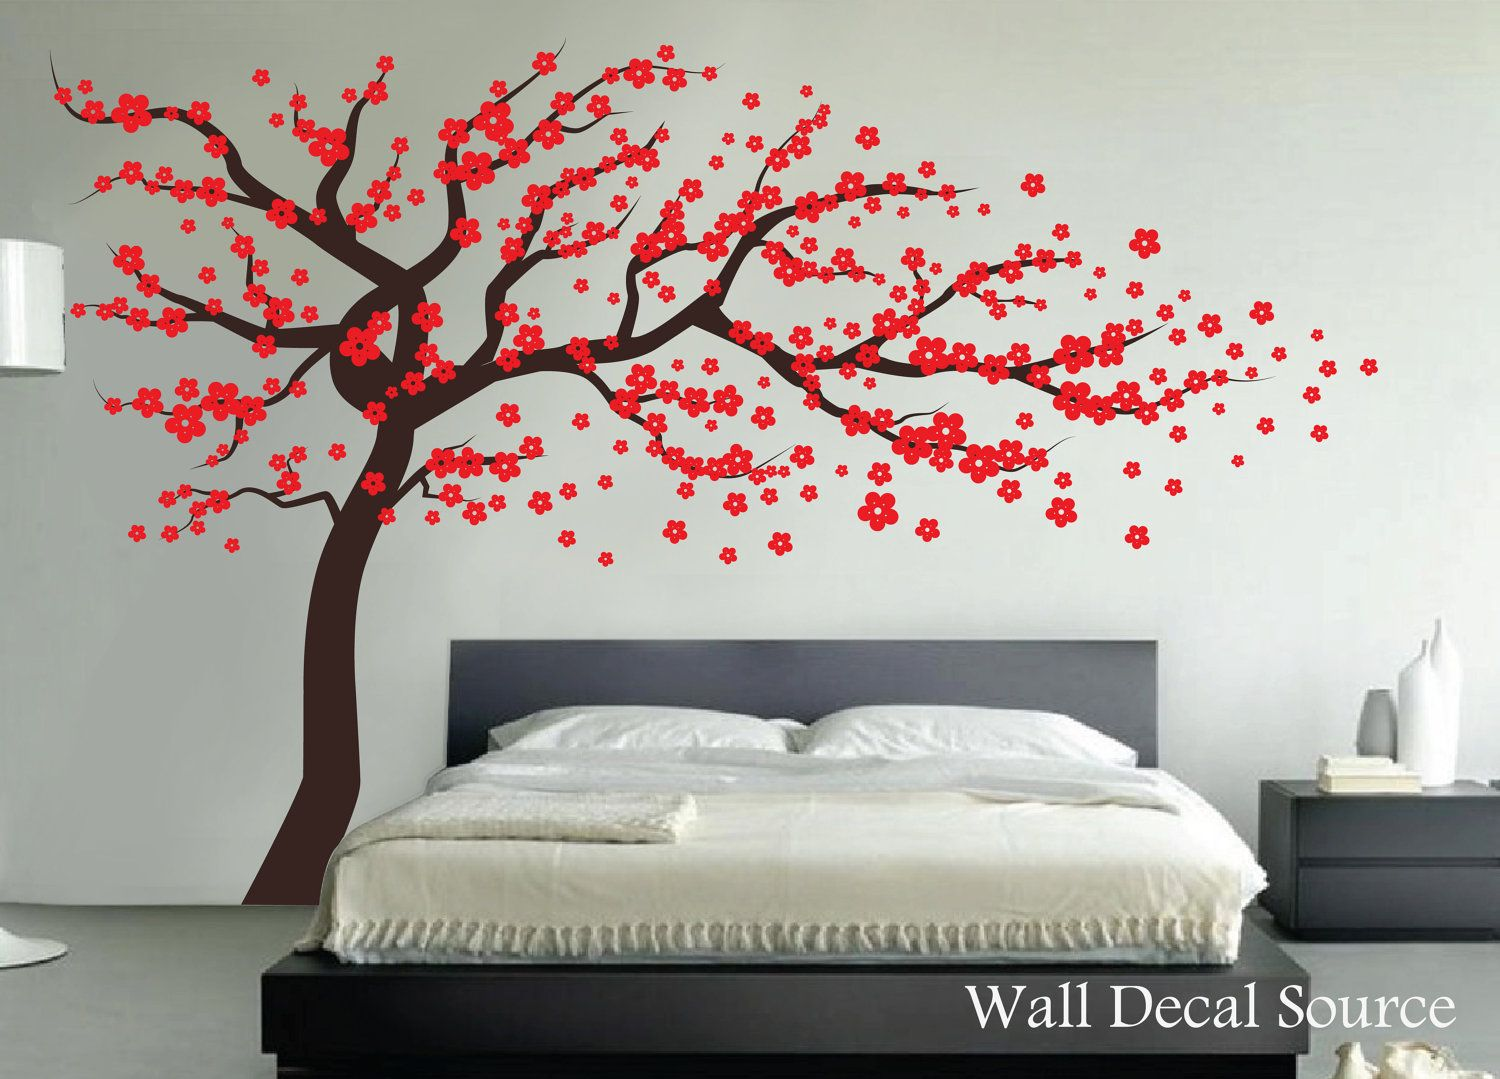 Red cherry blossom tree wall decal vinyl wall decor wall tree red cherry blossom tree wall decal vinyl wall decor wall tree decal reusable amipublicfo Image collections